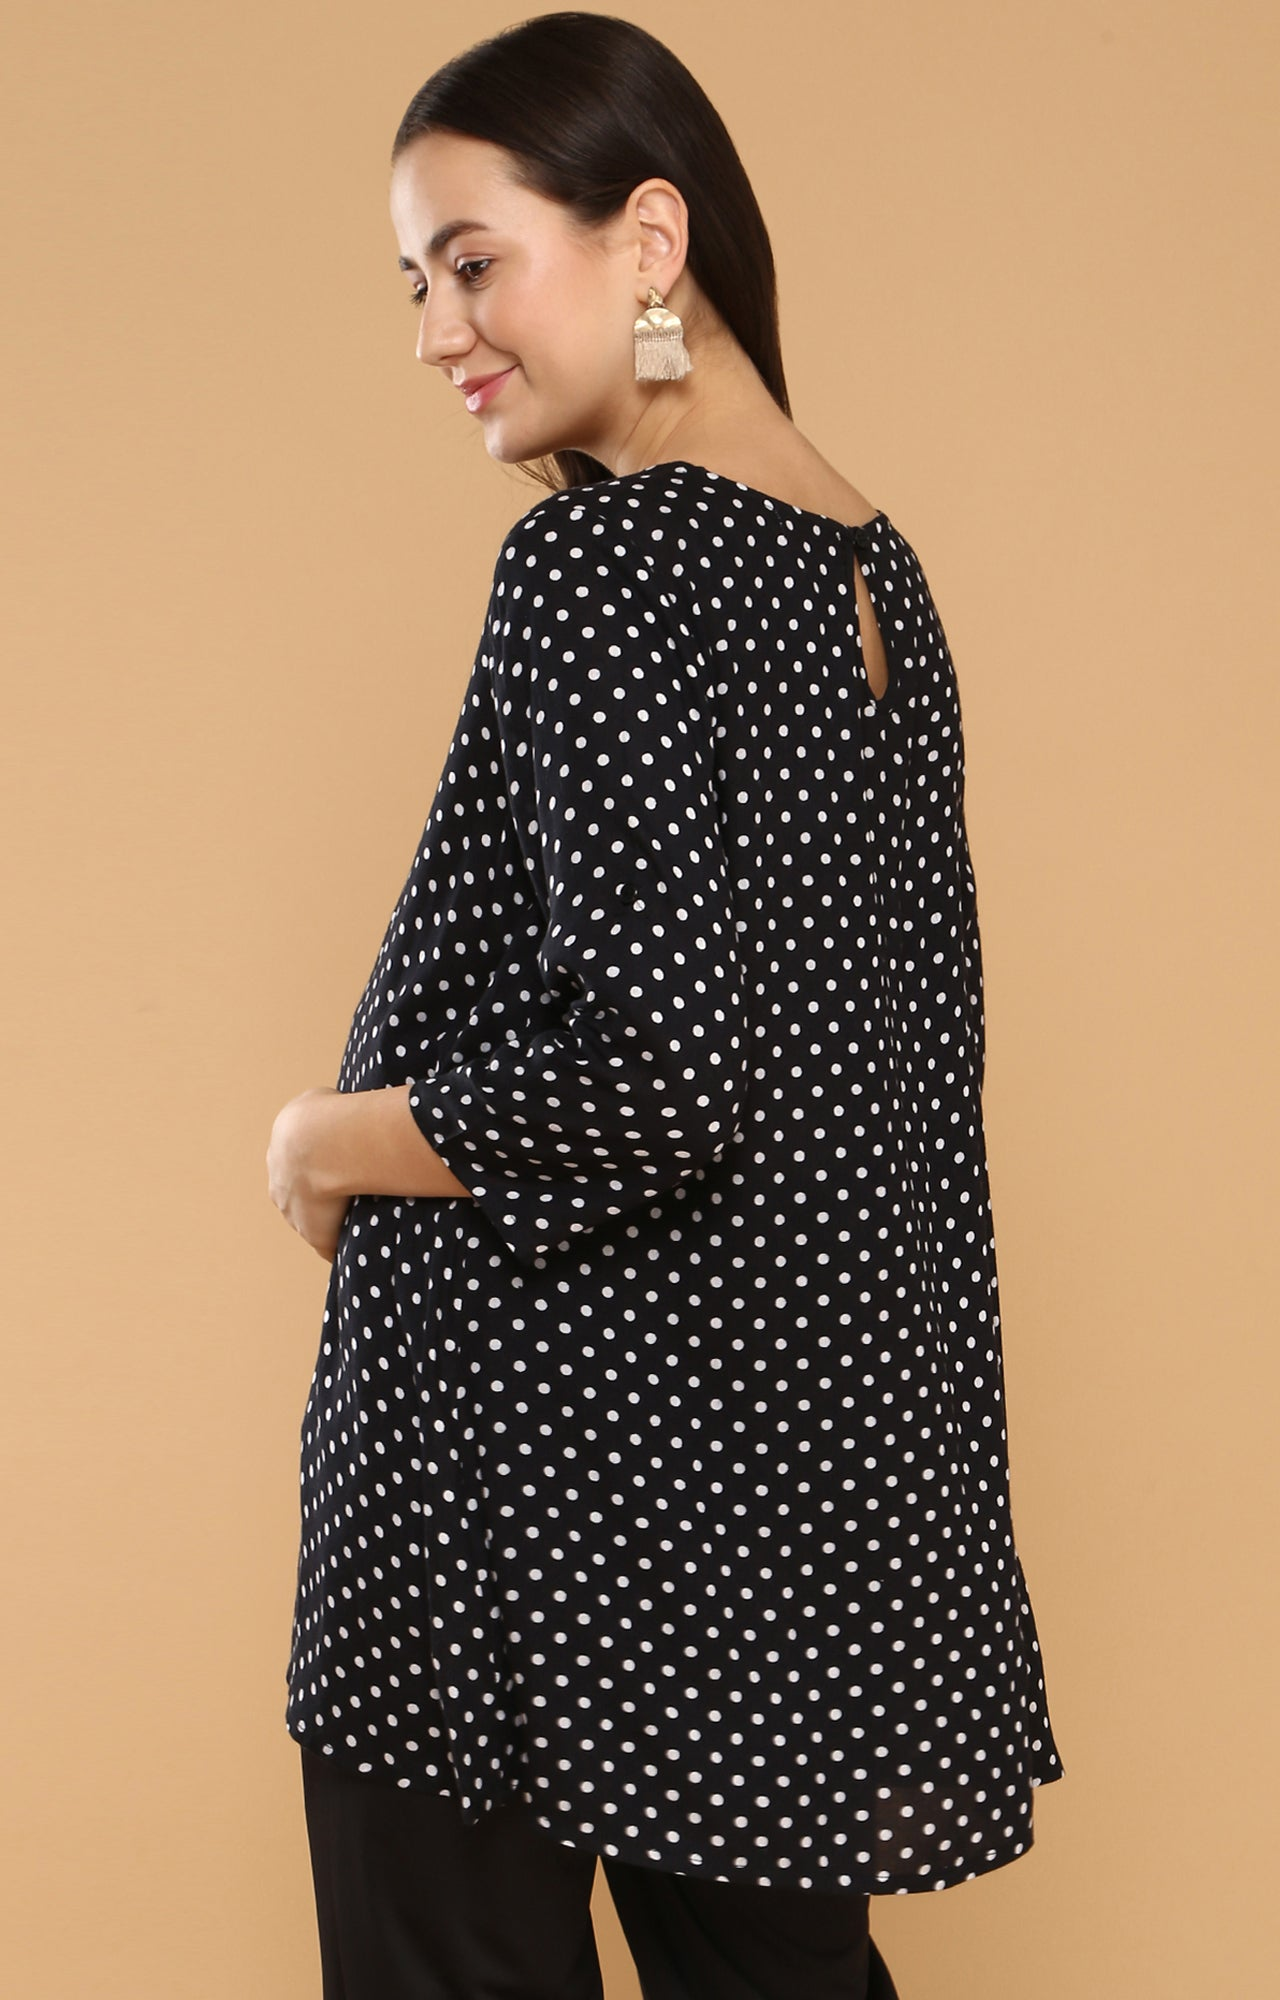 Lace Up Neck Polka Dot - momsoon maternity fashion wear